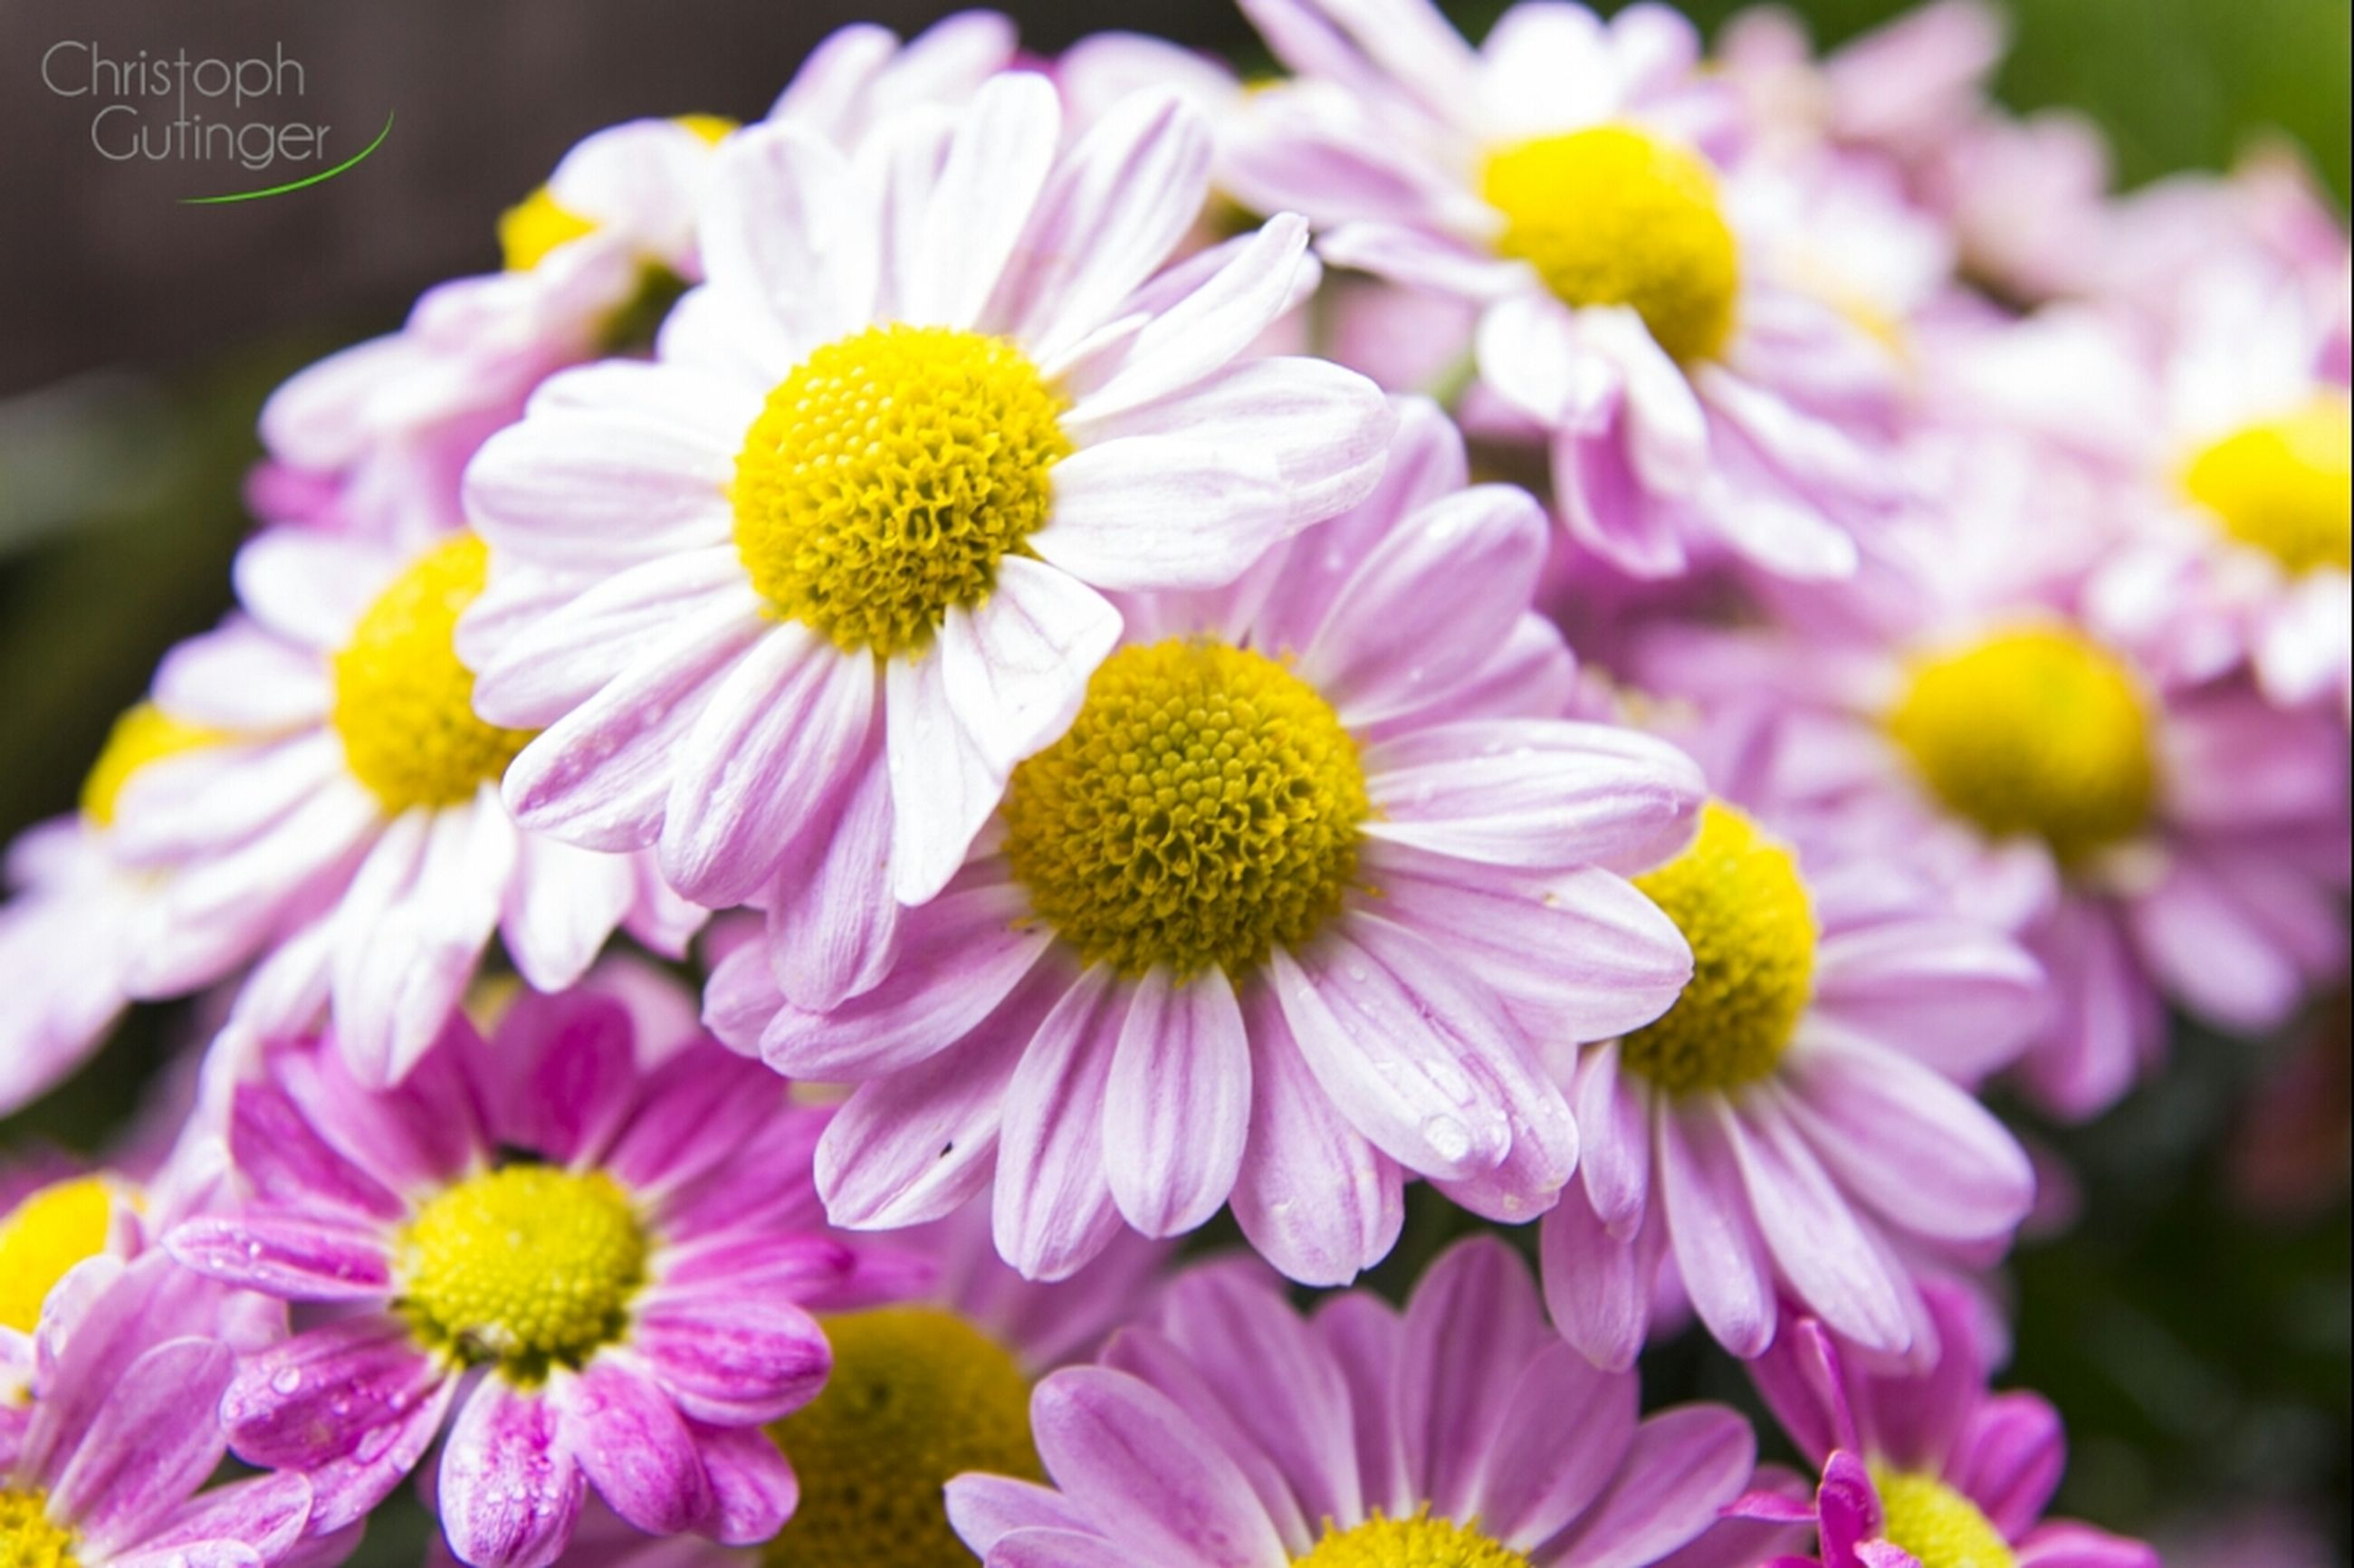 flower, freshness, petal, fragility, flower head, yellow, beauty in nature, close-up, growth, focus on foreground, blooming, nature, pollen, in bloom, pink color, high angle view, plant, selective focus, day, stamen